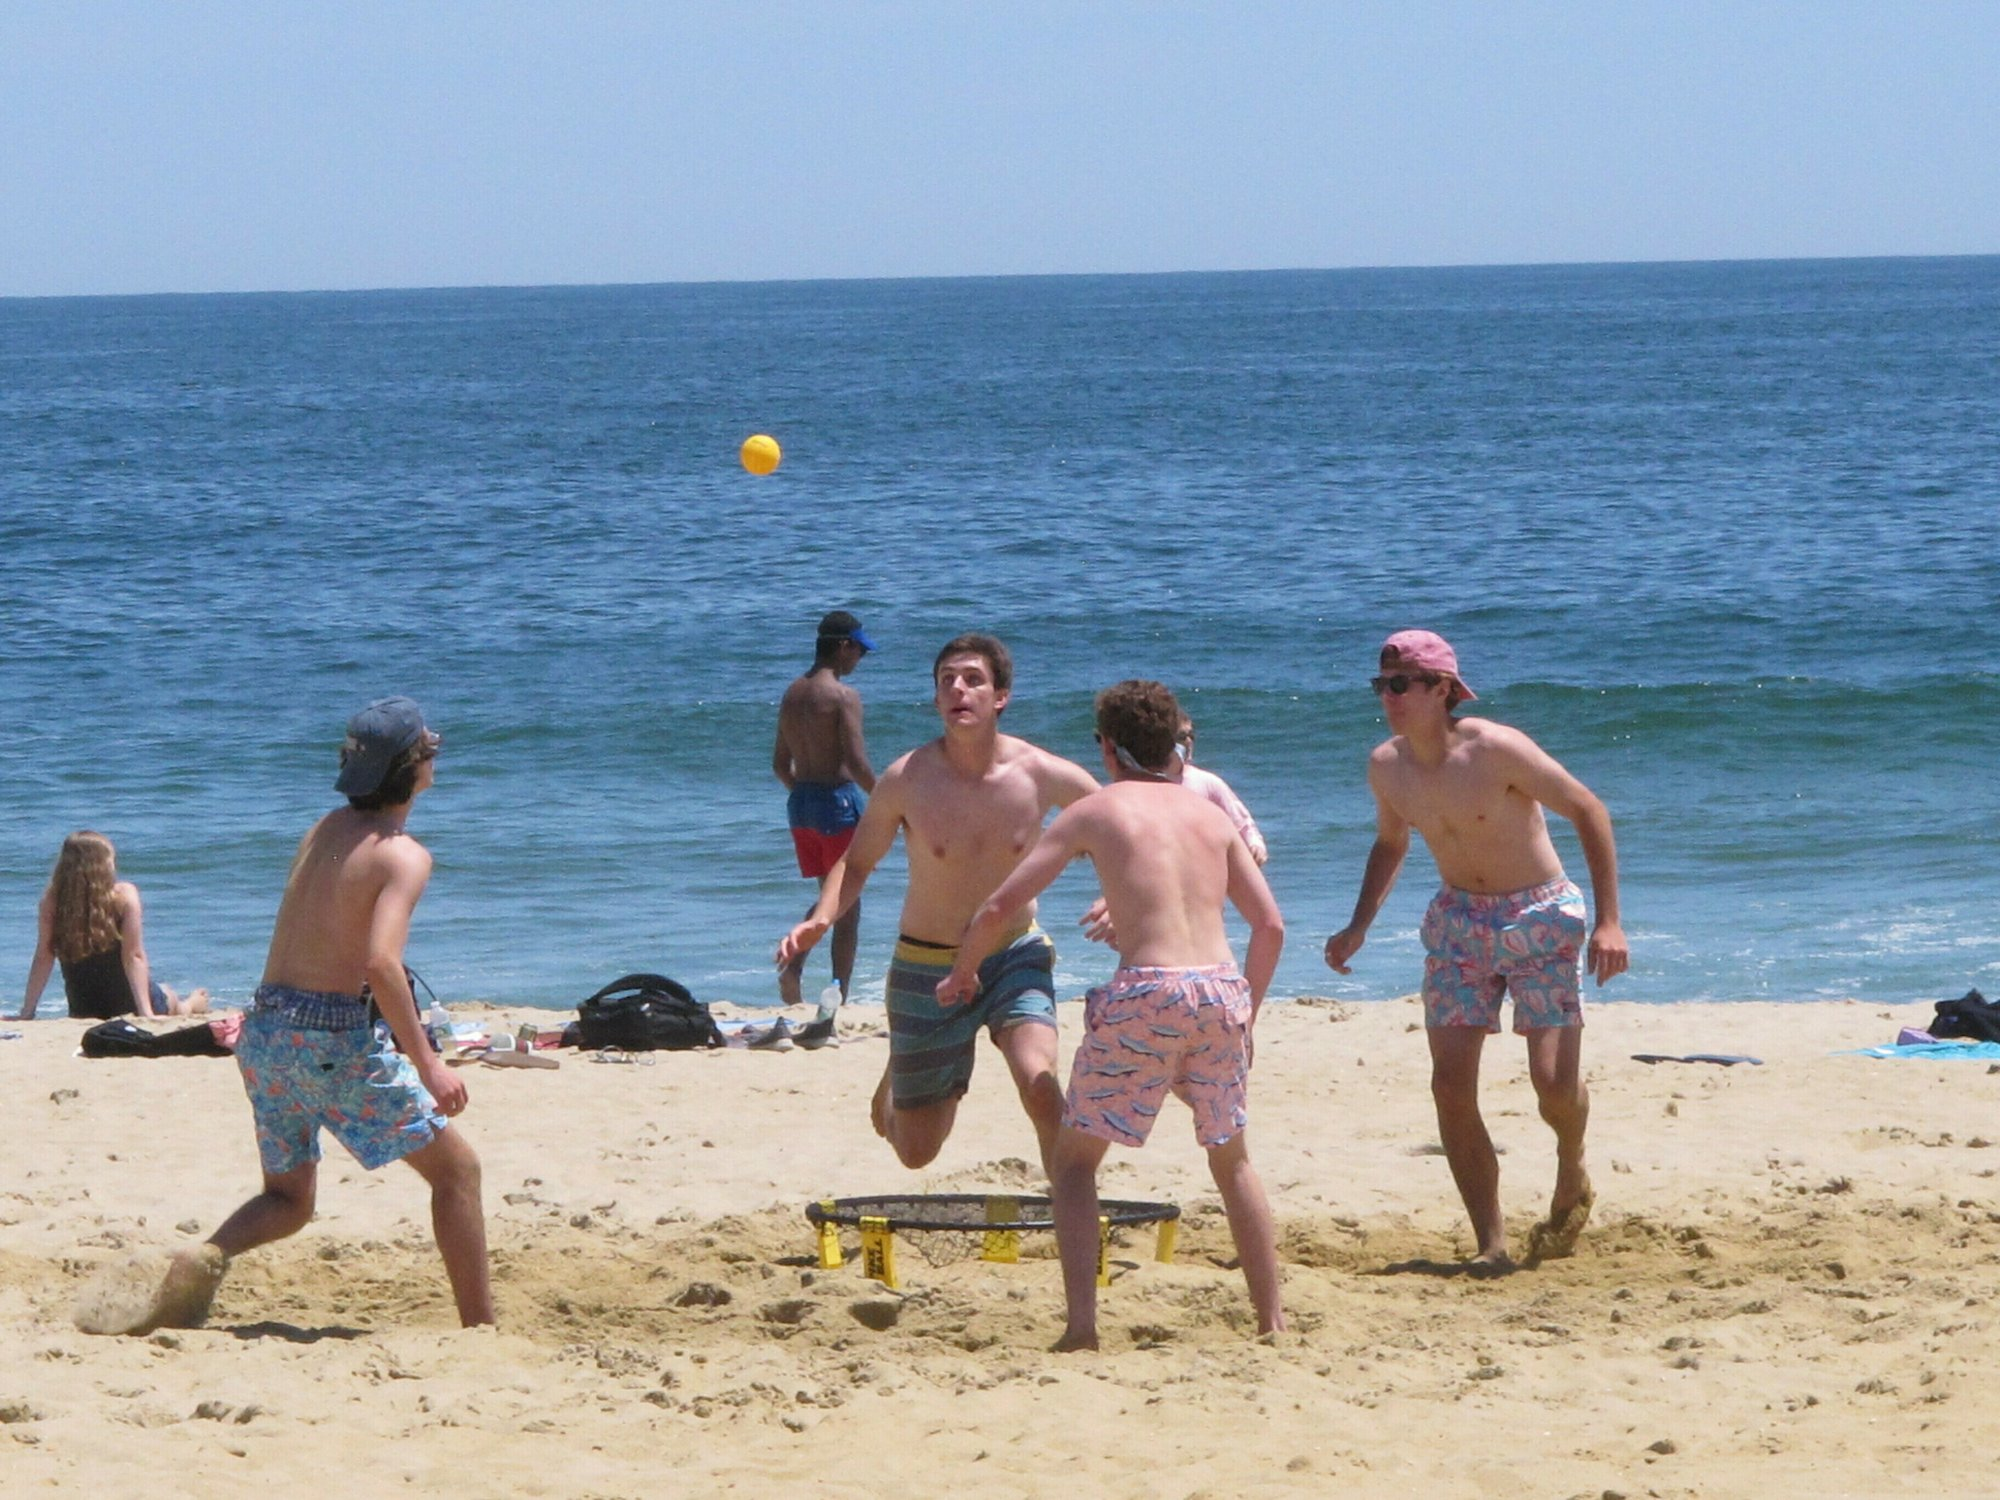 New Jersey governor signs law protecting public beach access